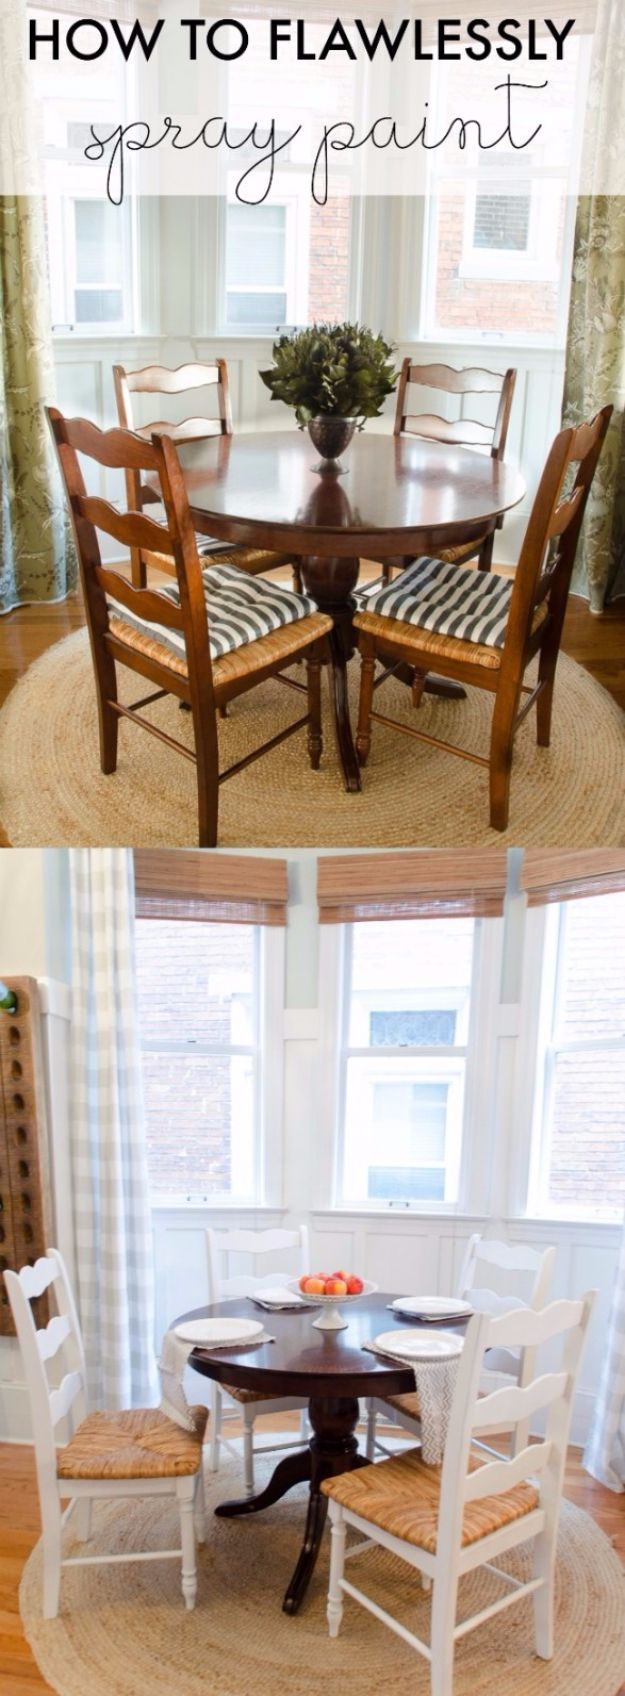 Spray Painting Tips and Tricks - Flawlessly Spray Paint Furnitures - Home Improvement Ideas and Tutorials for Spray Painting Furniture, House, Doors, Trim, Windows and Walls - Step by Step Tutorials and Best How To Instructions - DIY Projects and Crafts by DIY JOY http://diyjoy.com/spray-painting-tips-tricks